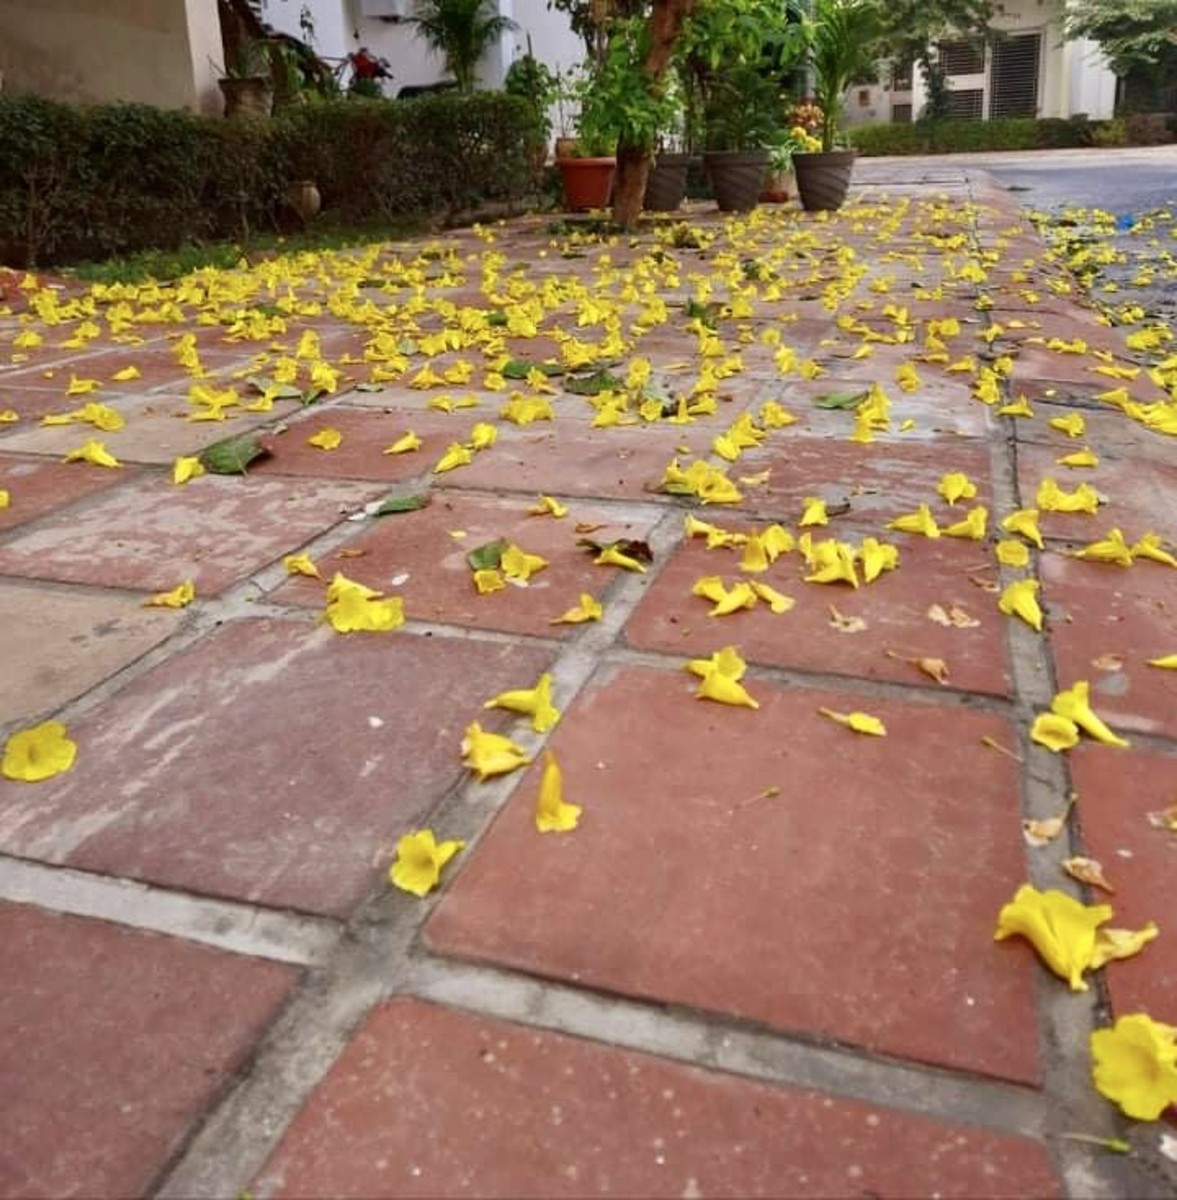 Walking past the fallen flowers, once bloomed with pride